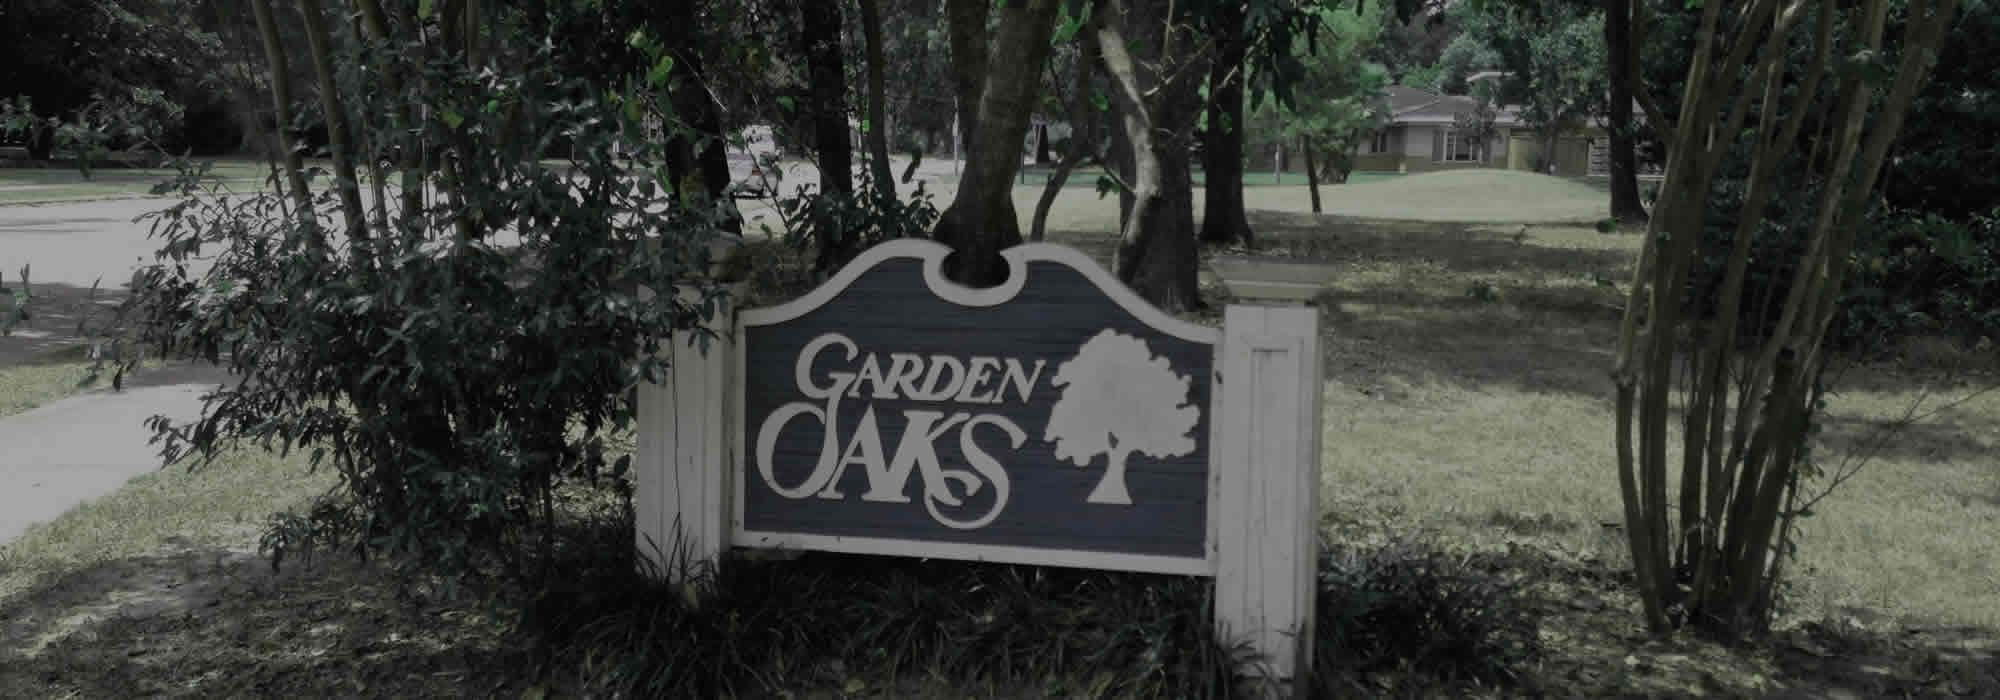 Garden Oak Houston Air Conditioning Repair See Why Javco Is The Premier In Oaks Area